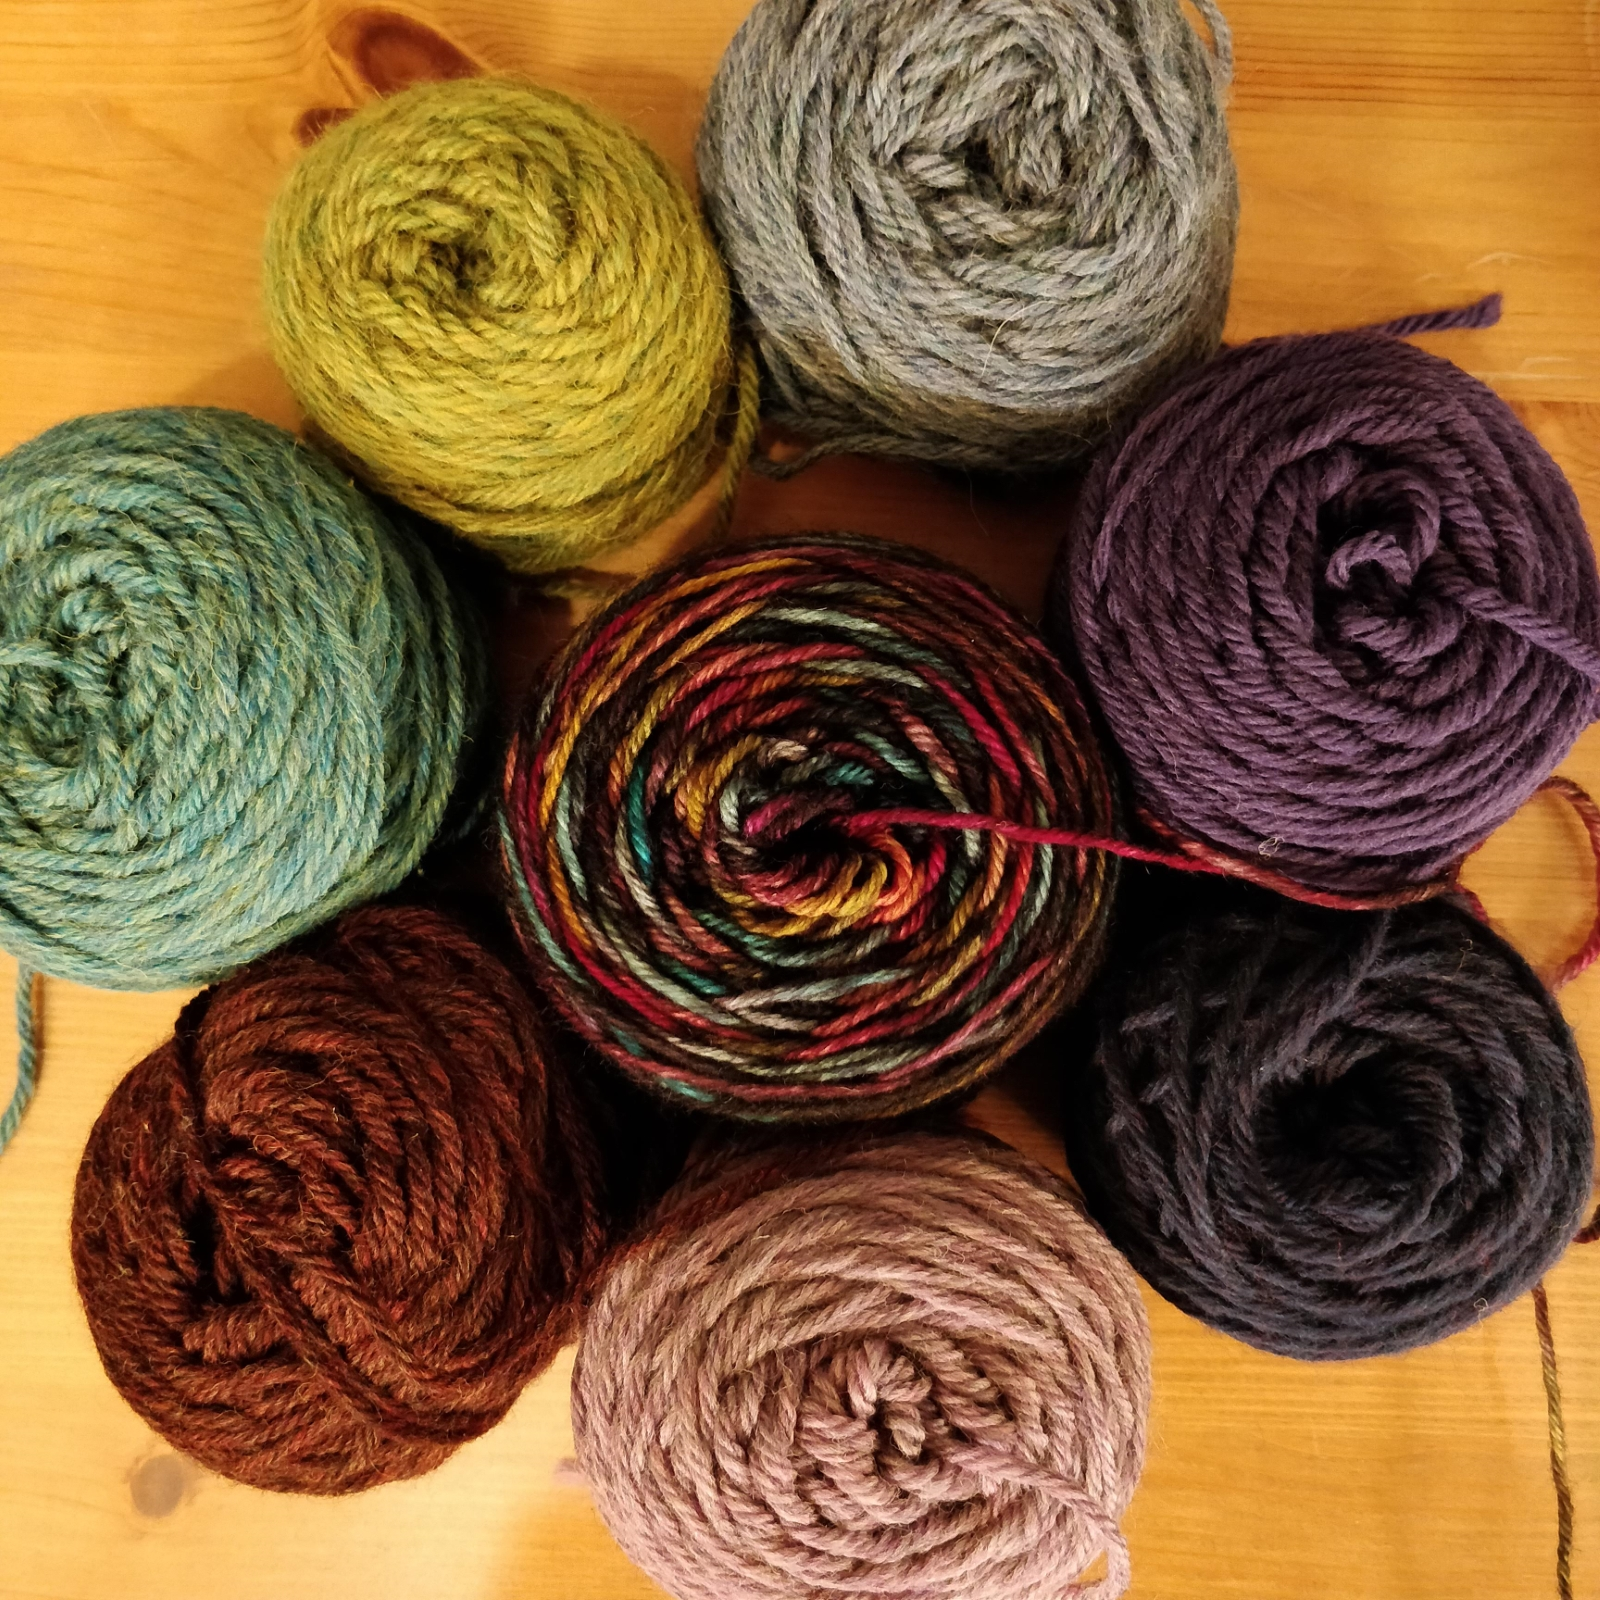 A collection of small balls of yarn in shades of greens, purples and blues.